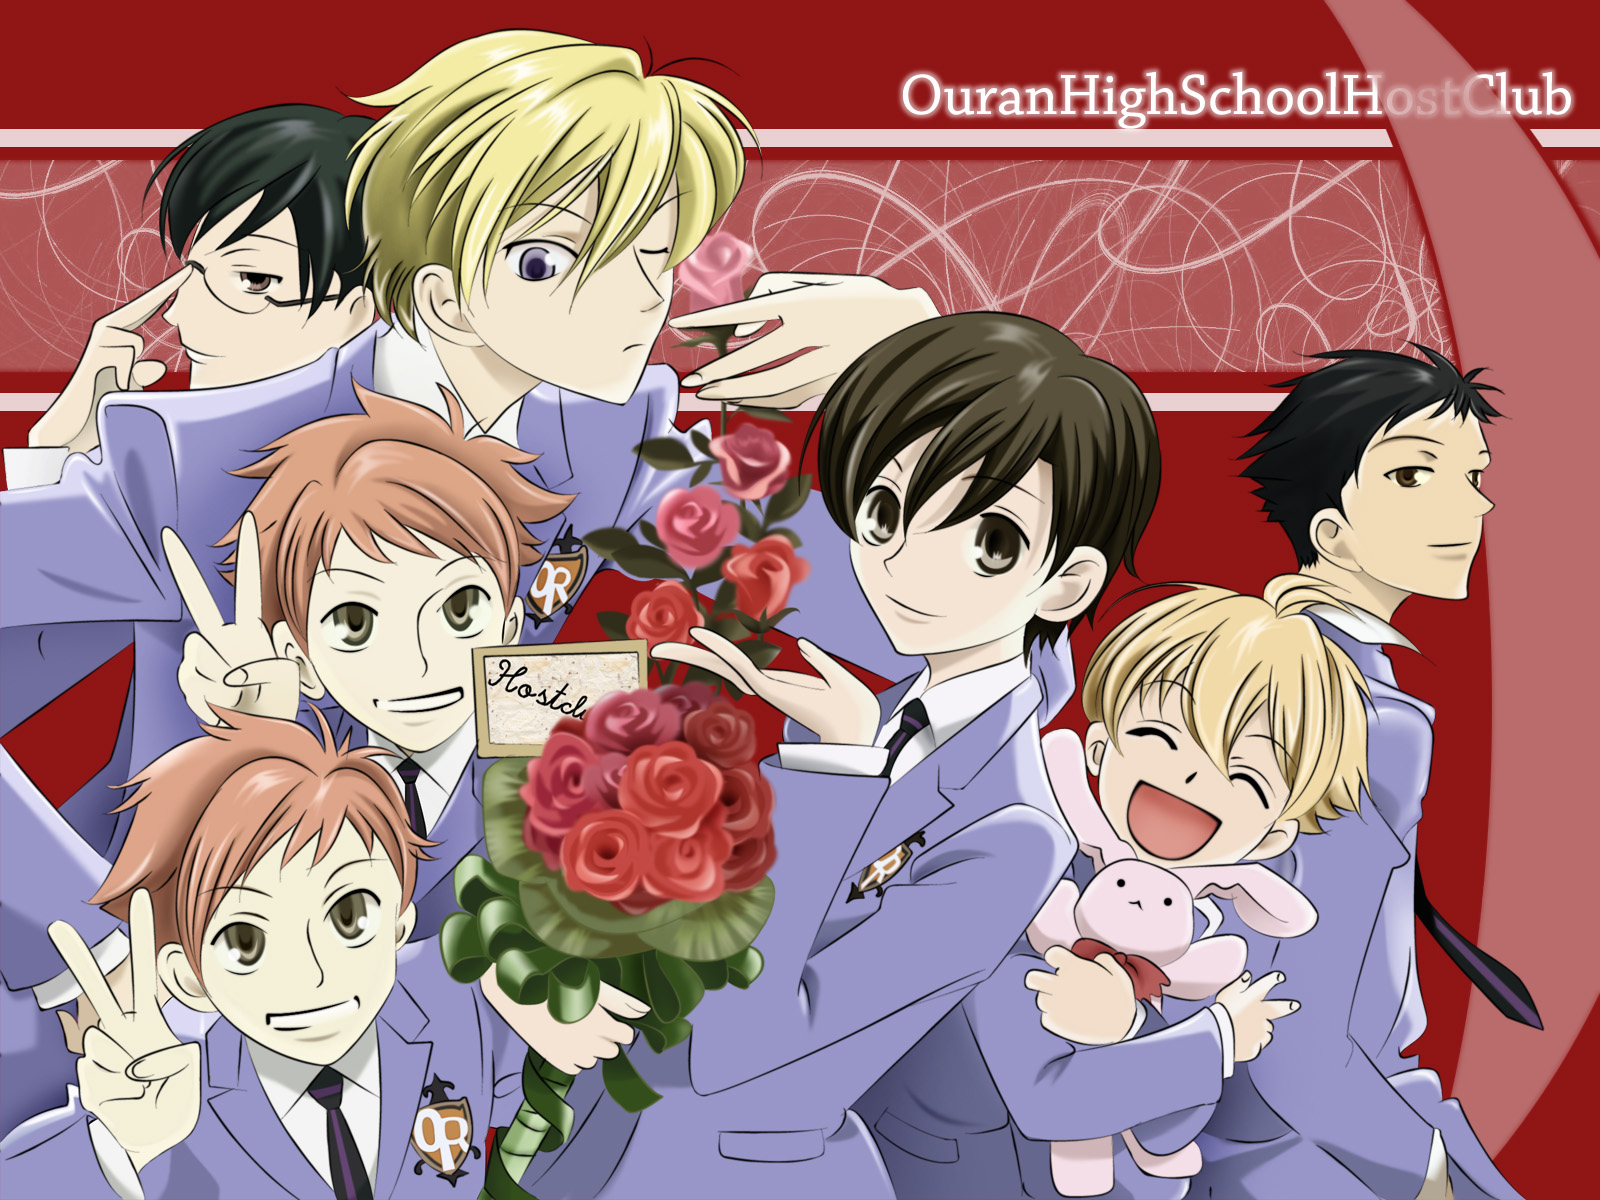 163: Ouran High School Host Club